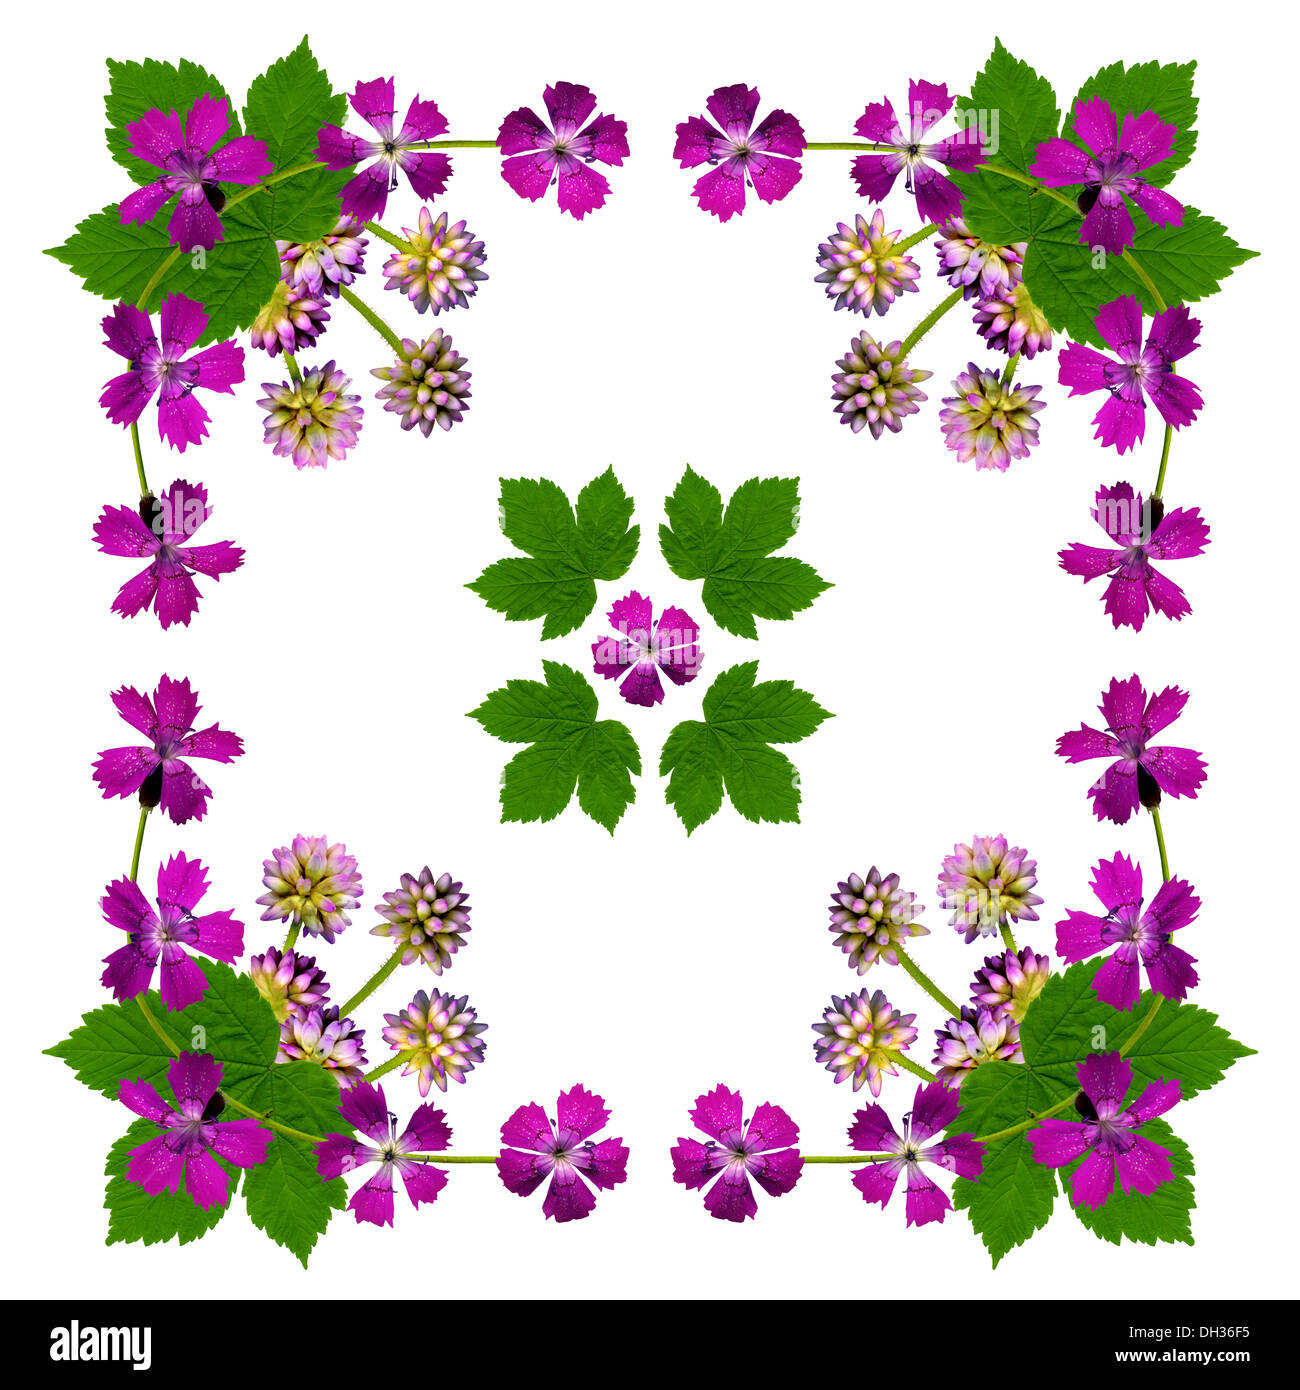 Napkin with purple flowers - Stock Image